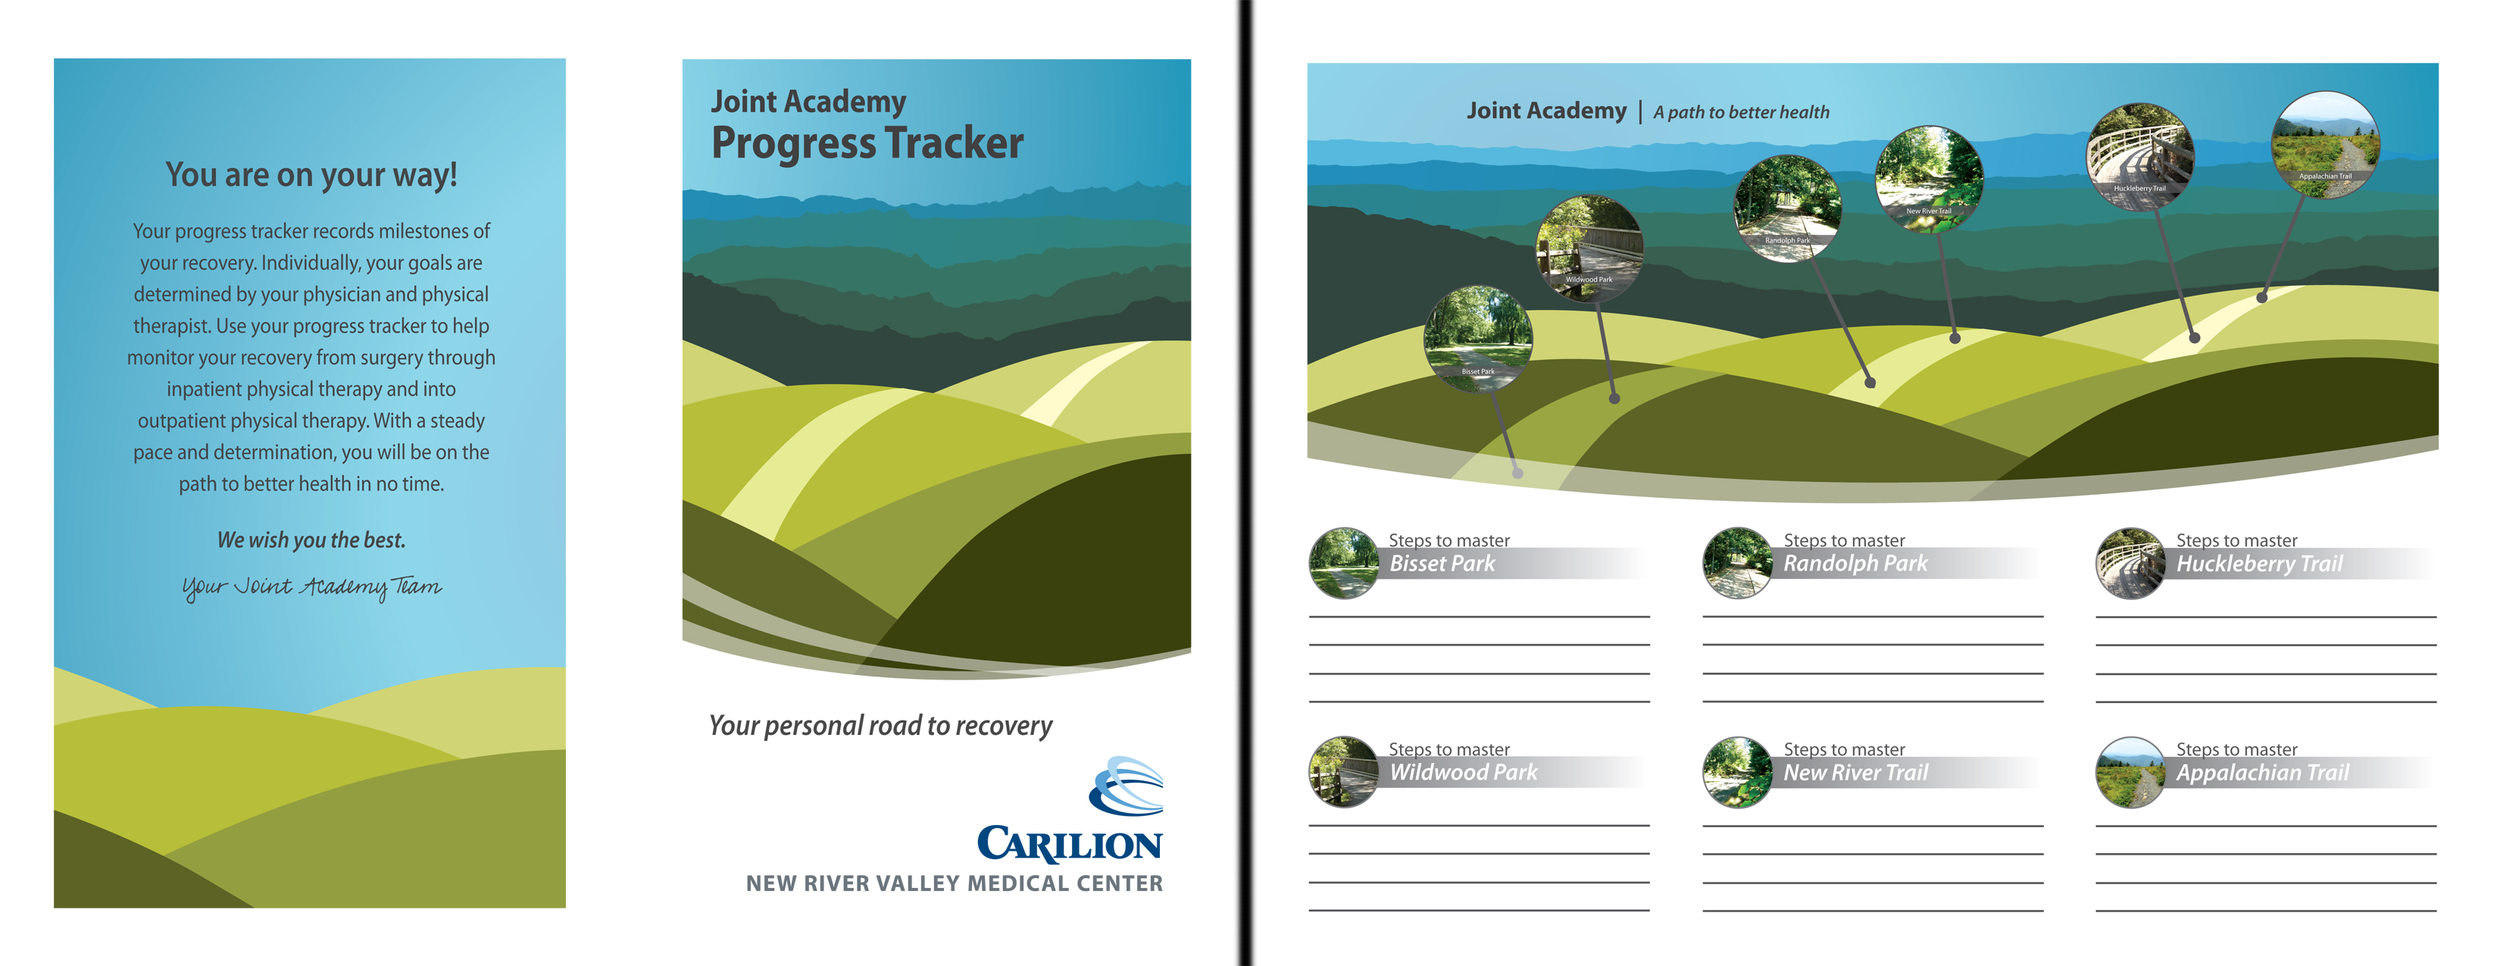 J663 Joint Academy Progress Tracker-1.jpg